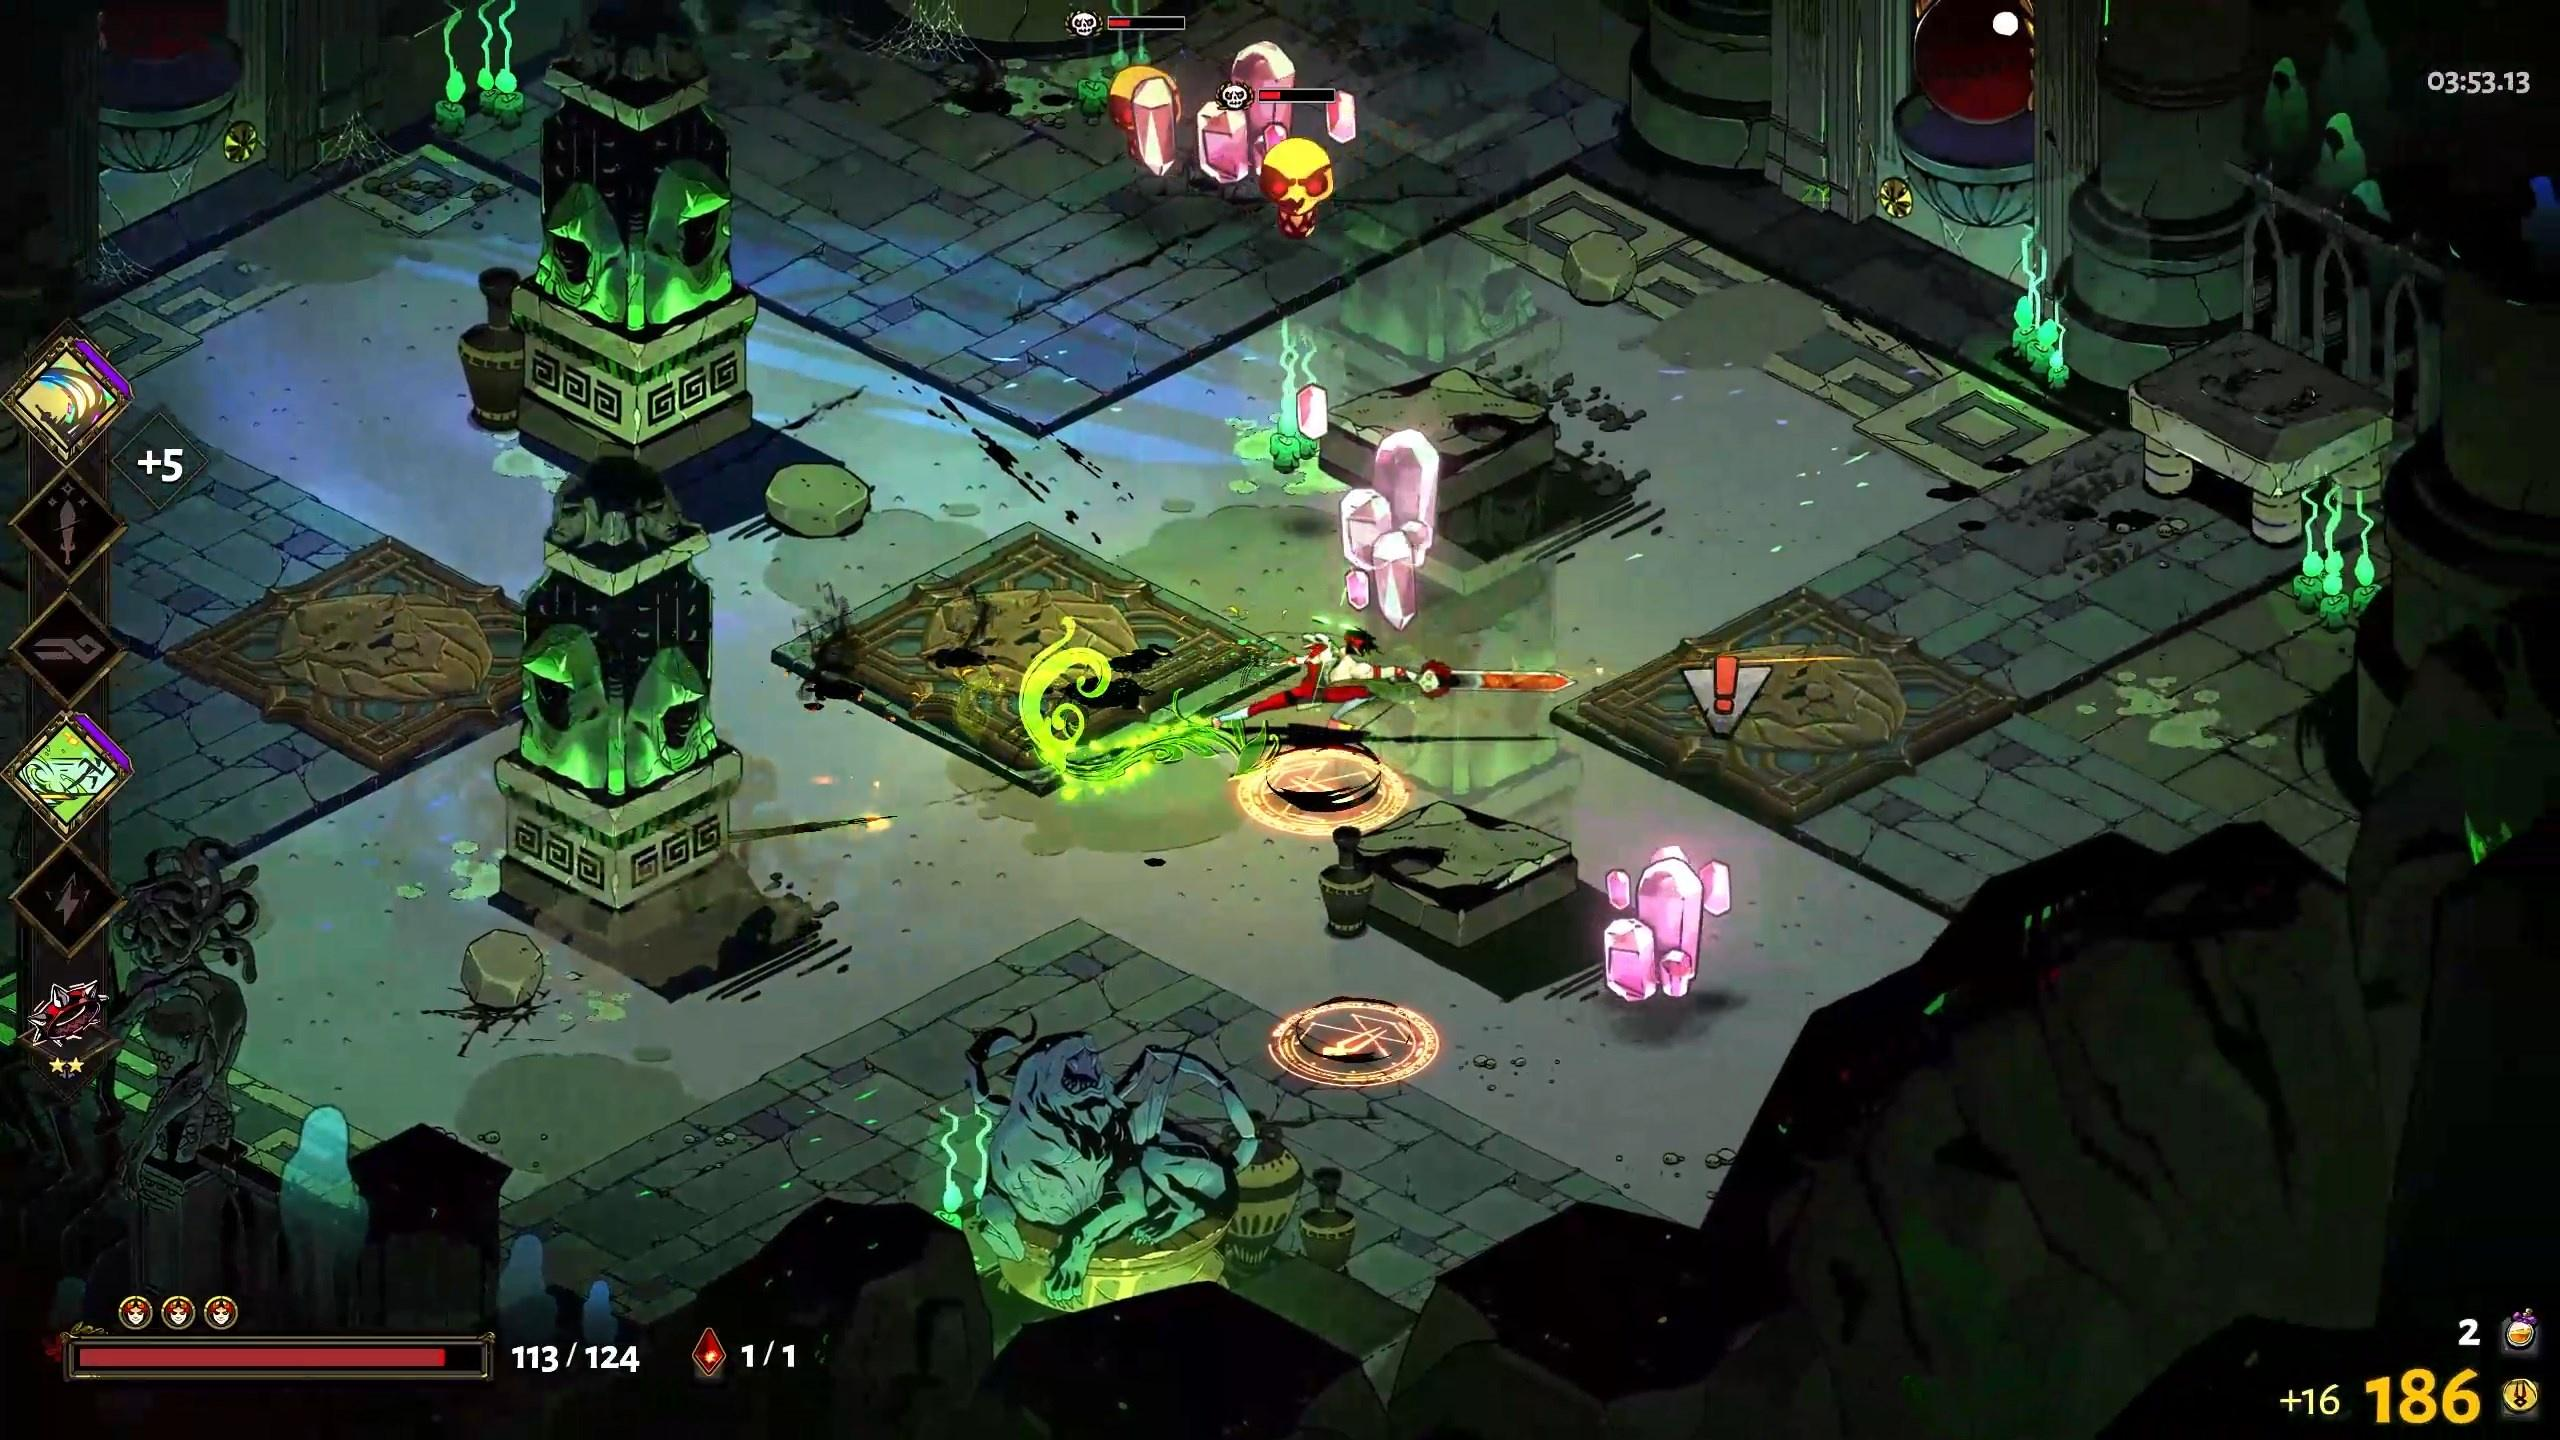 A screenshot of an early level in Hades, from a top down view. Protagonist Zagreus is lunging at an enemy that resembles a cluster of pink crystals.